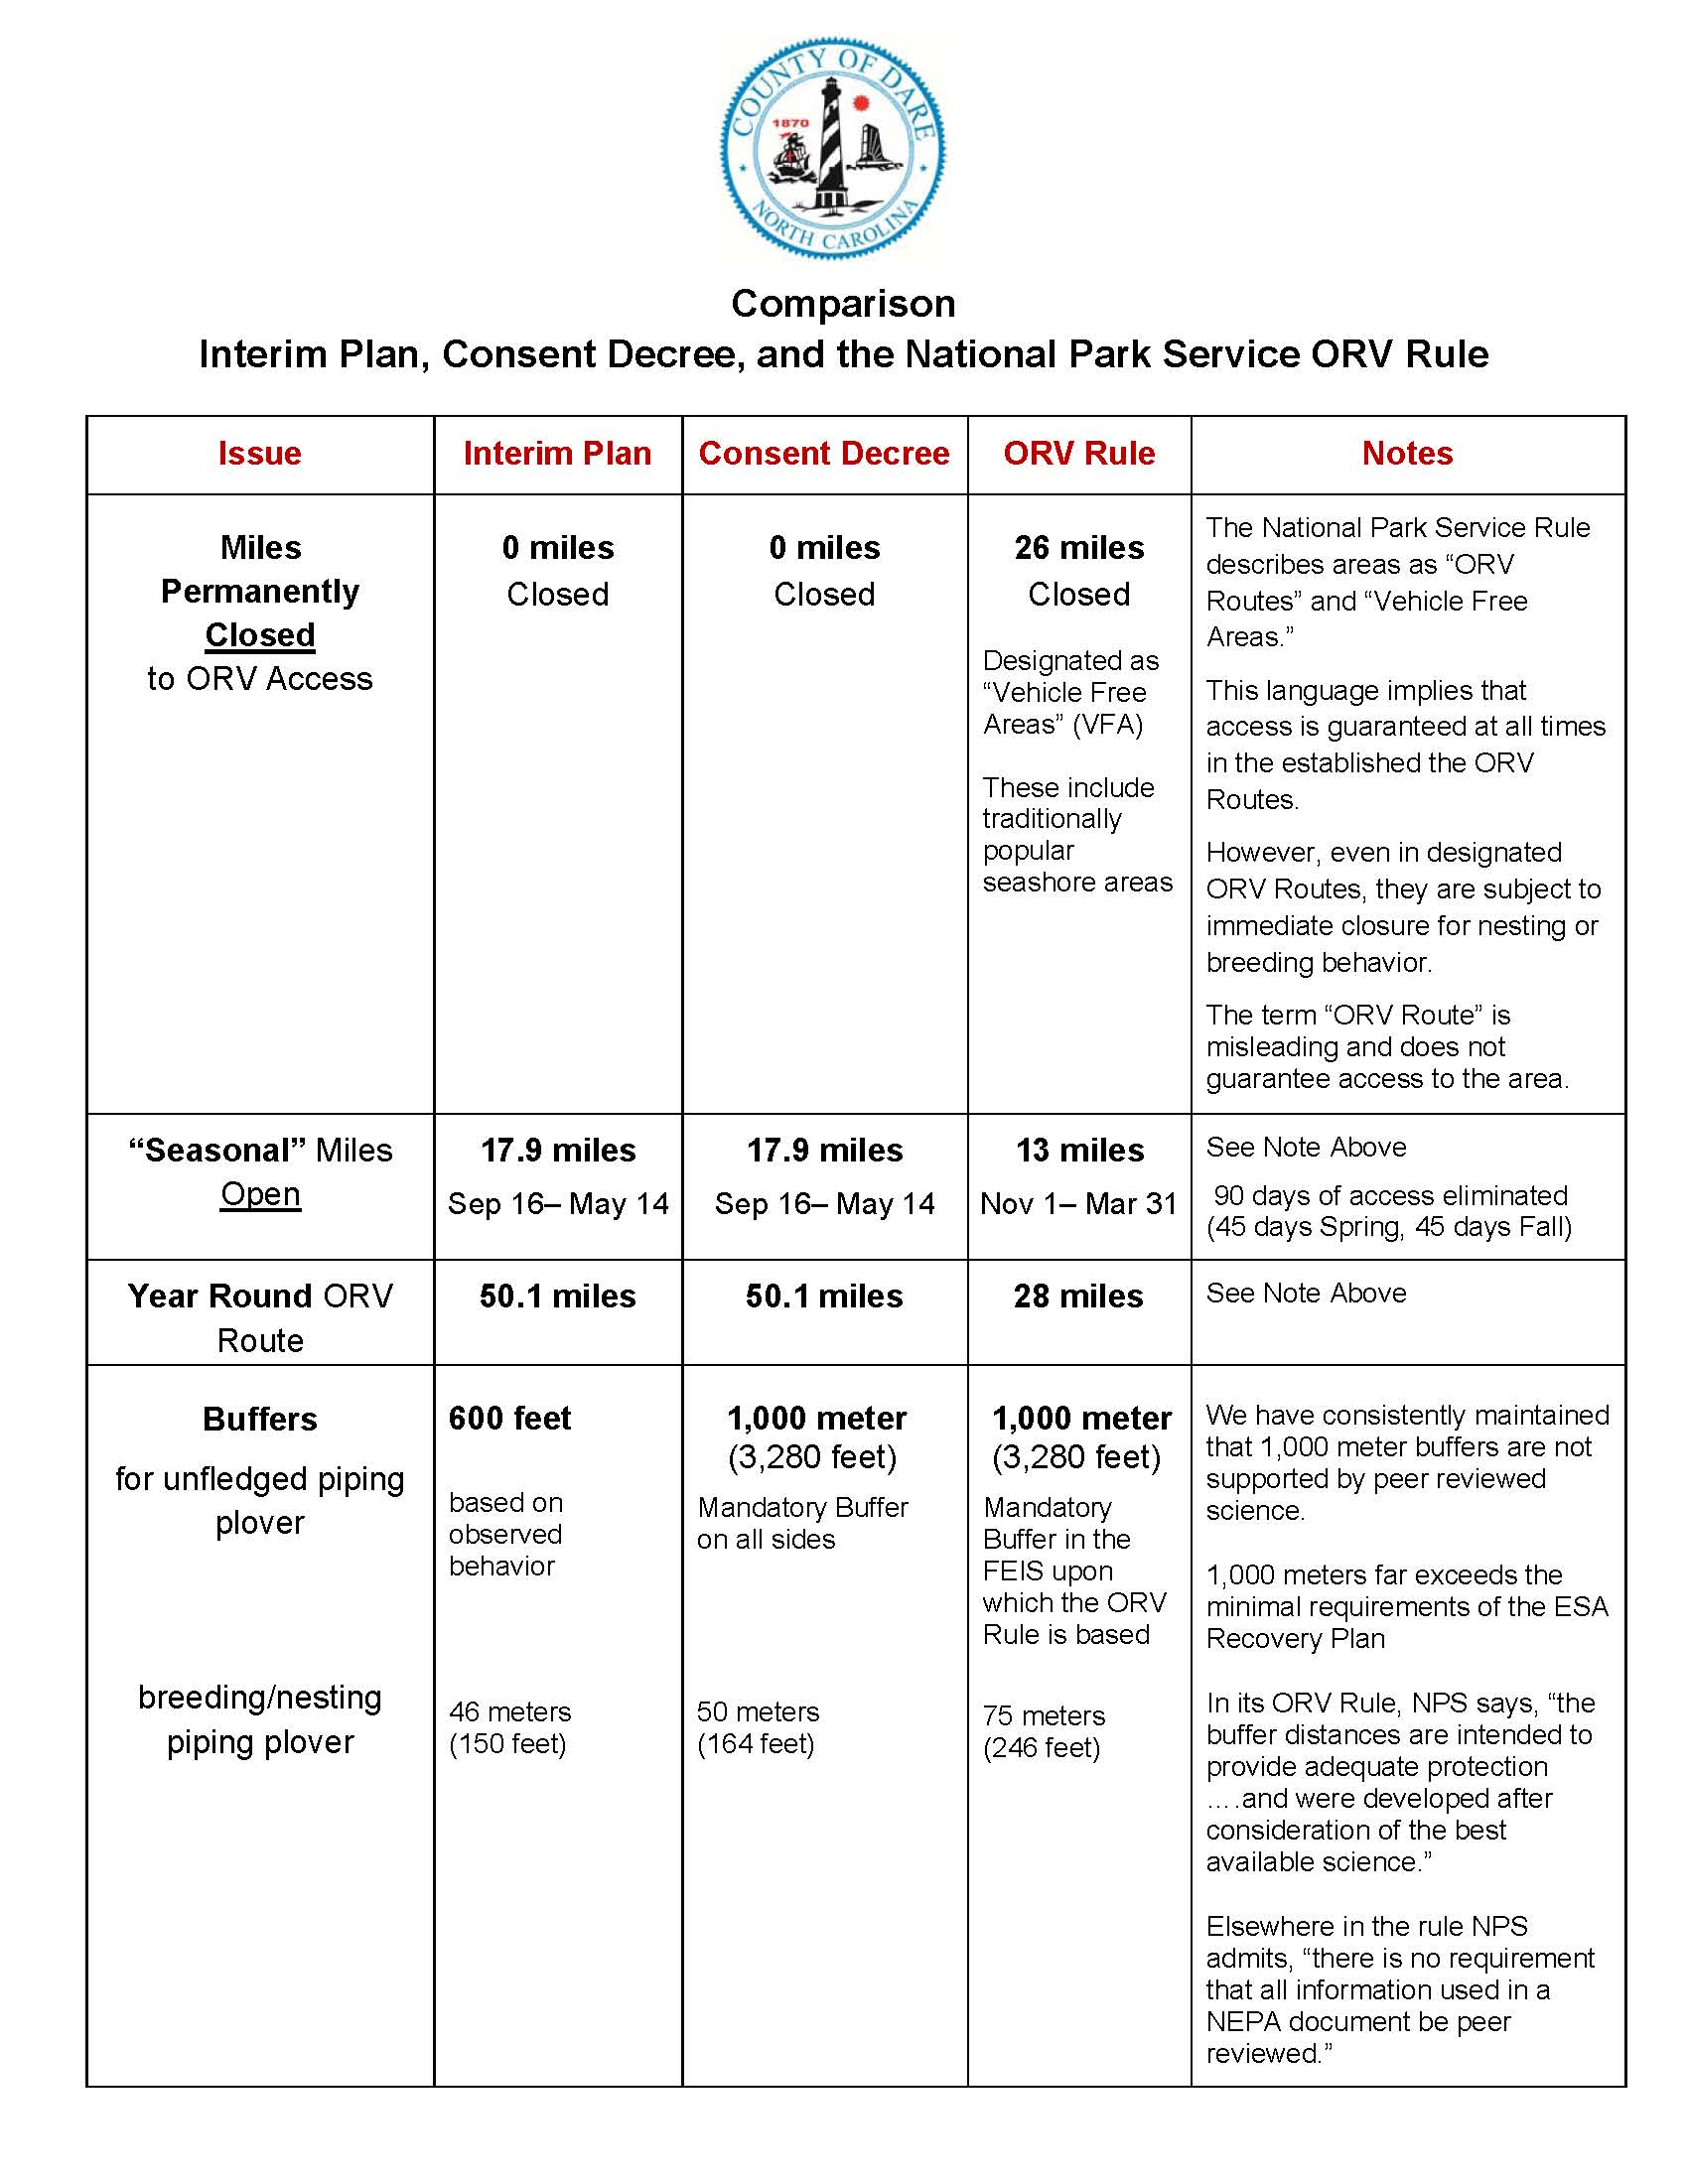 5-3-12 4094- beach access comparison chart_page_1